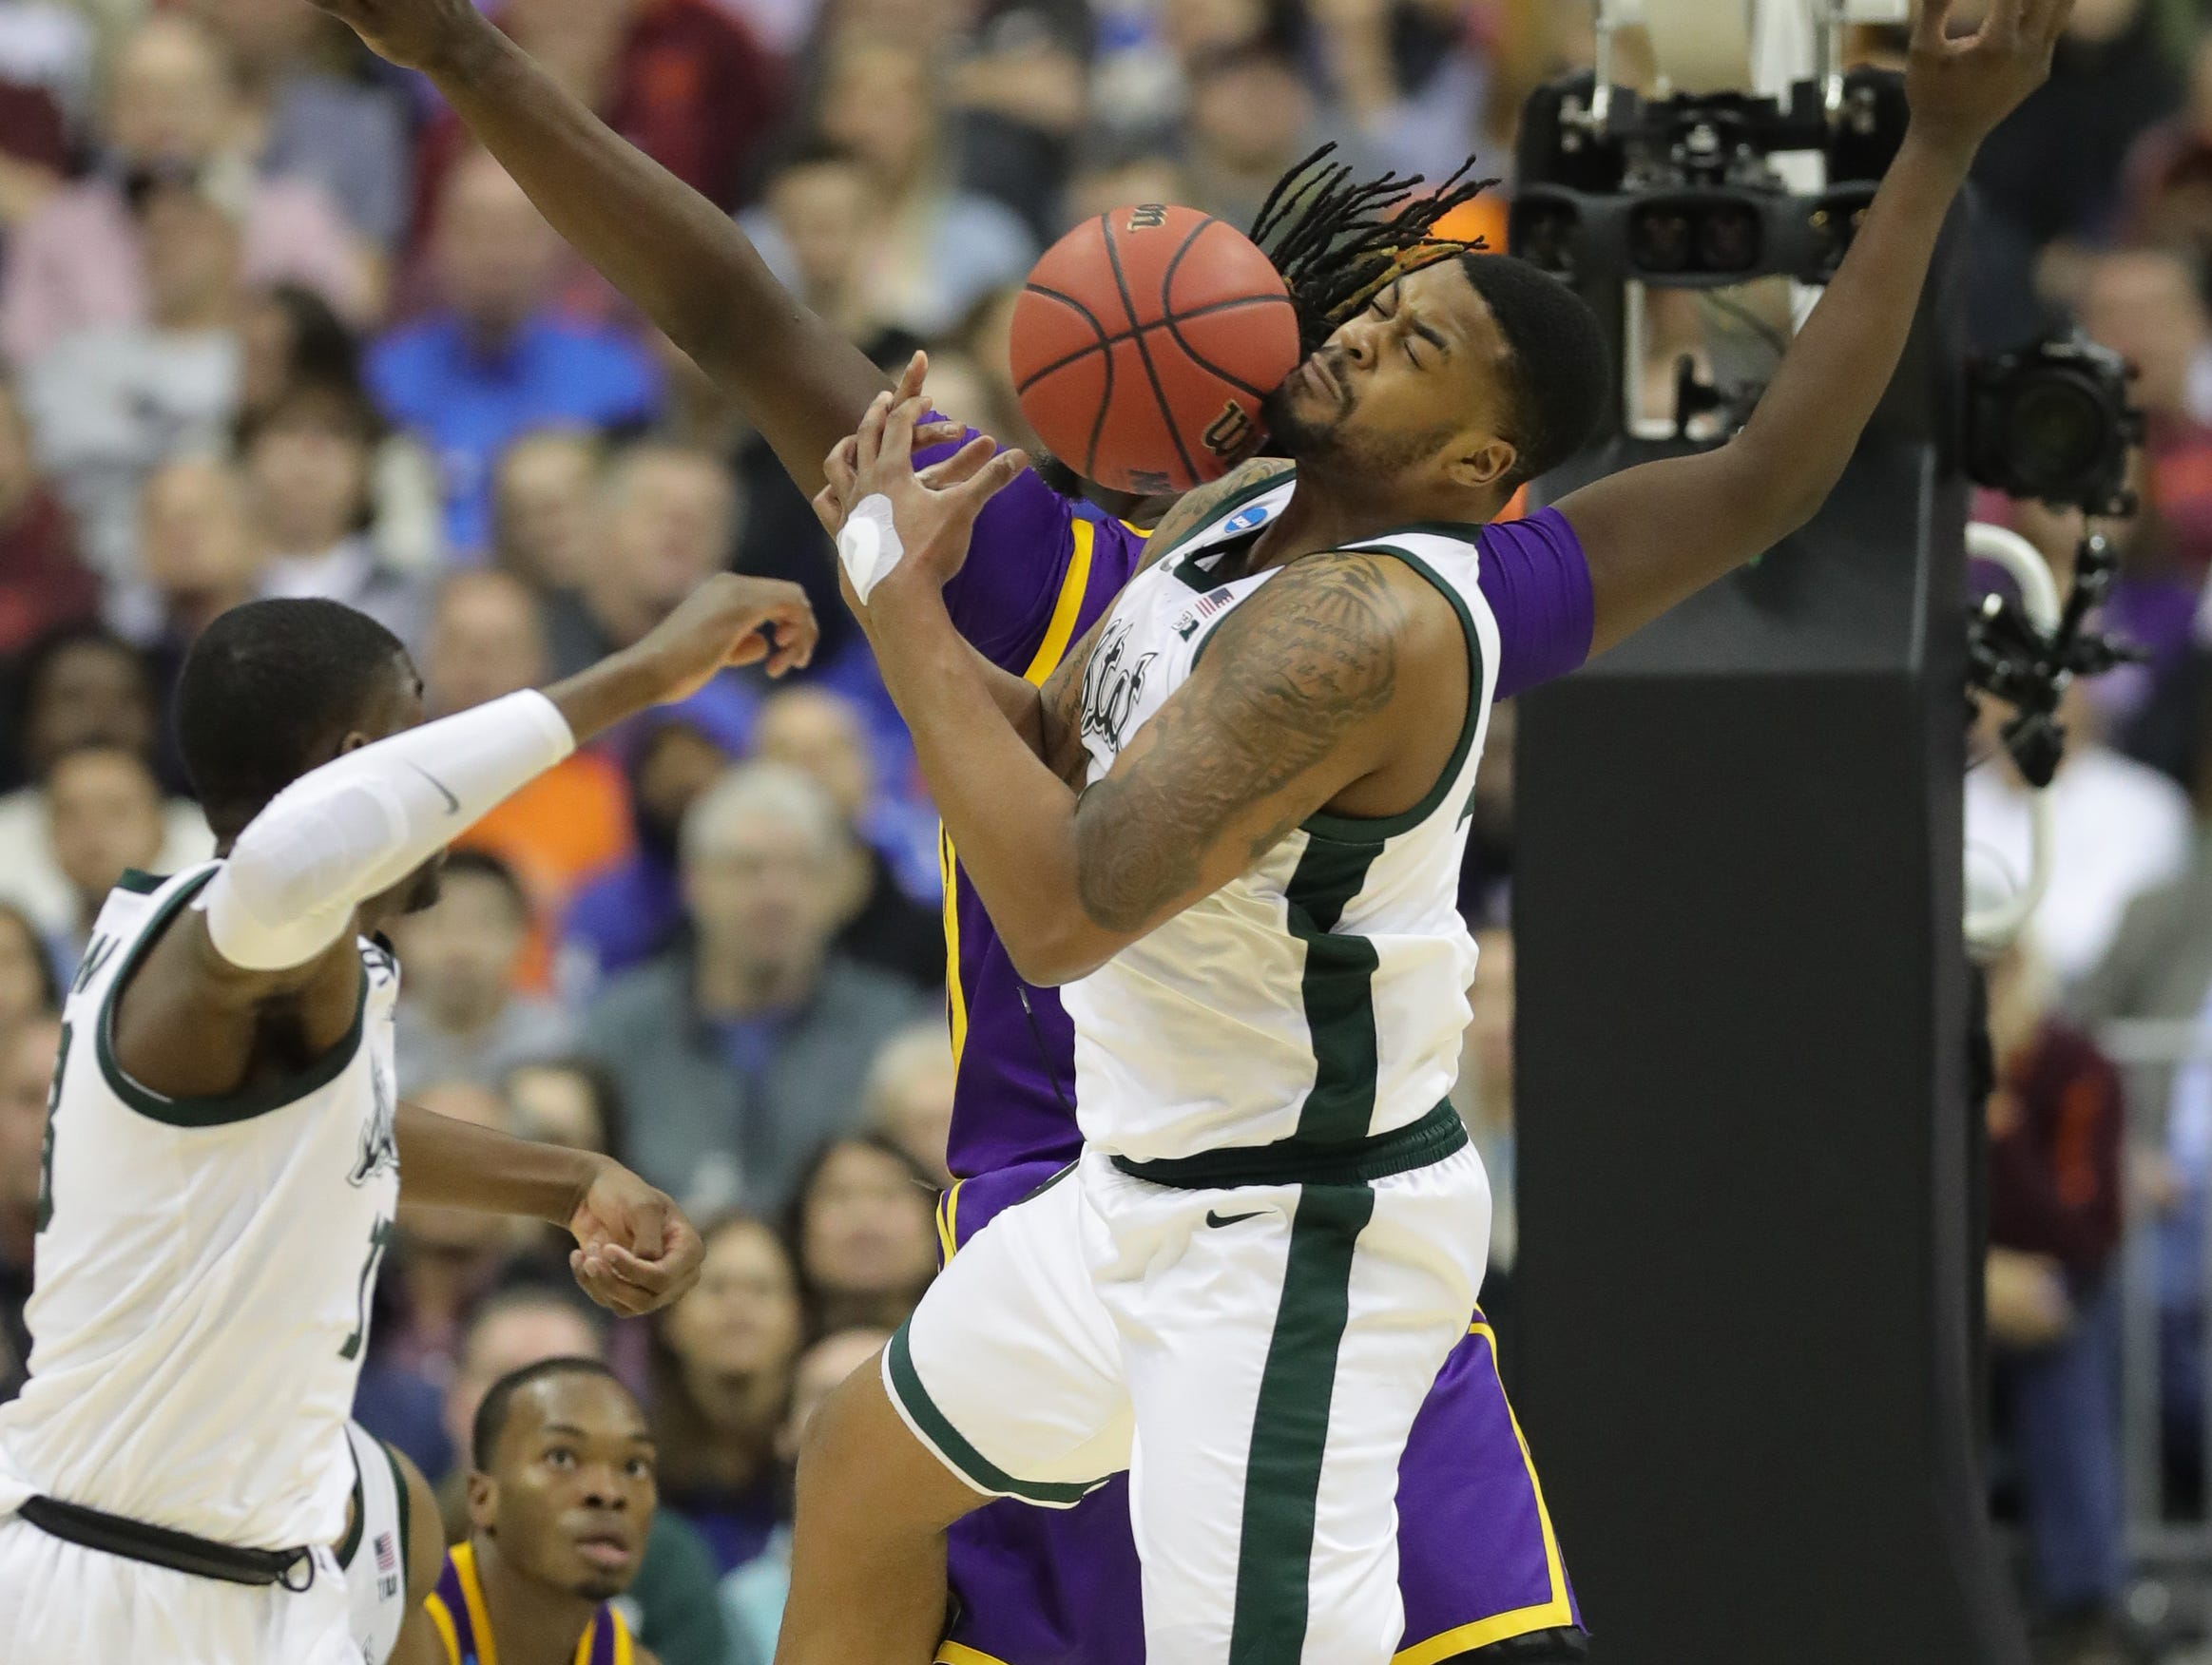 Michigan State forward Nick Ward defends against LSU forward Naz Reid during the second half of MSU's 80-63 win over LSU in the NCAA tournament on Friday, March 29, 2019, in Washington.